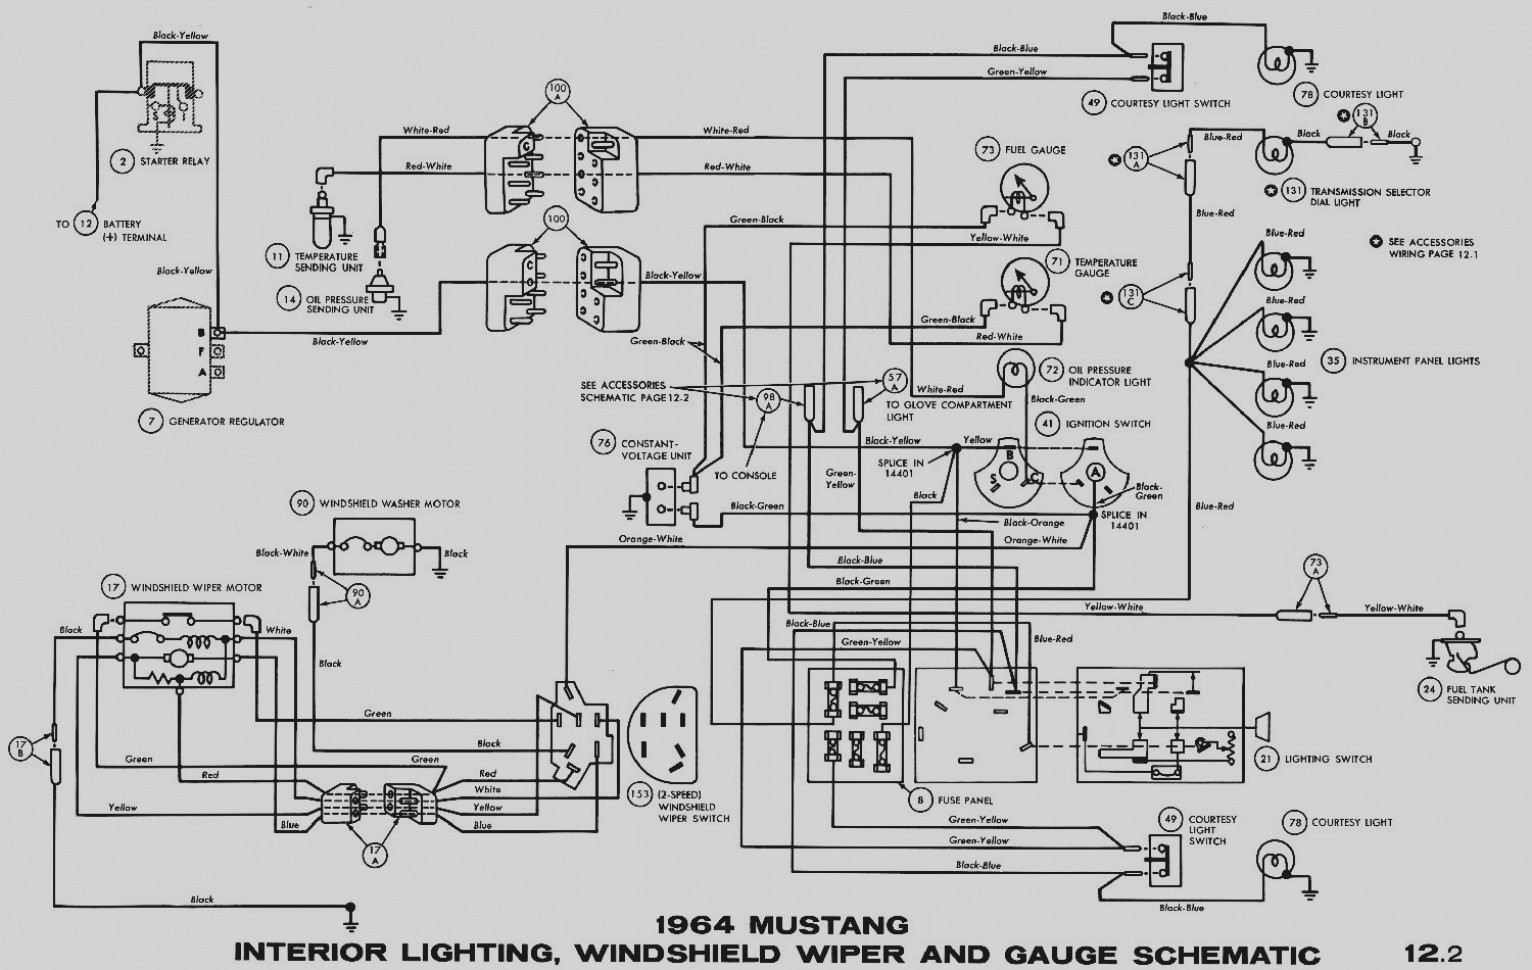 Electrical Schematic Light Wiring Diagram Simple Basic House Circuit 89 Chevy Tail Auto